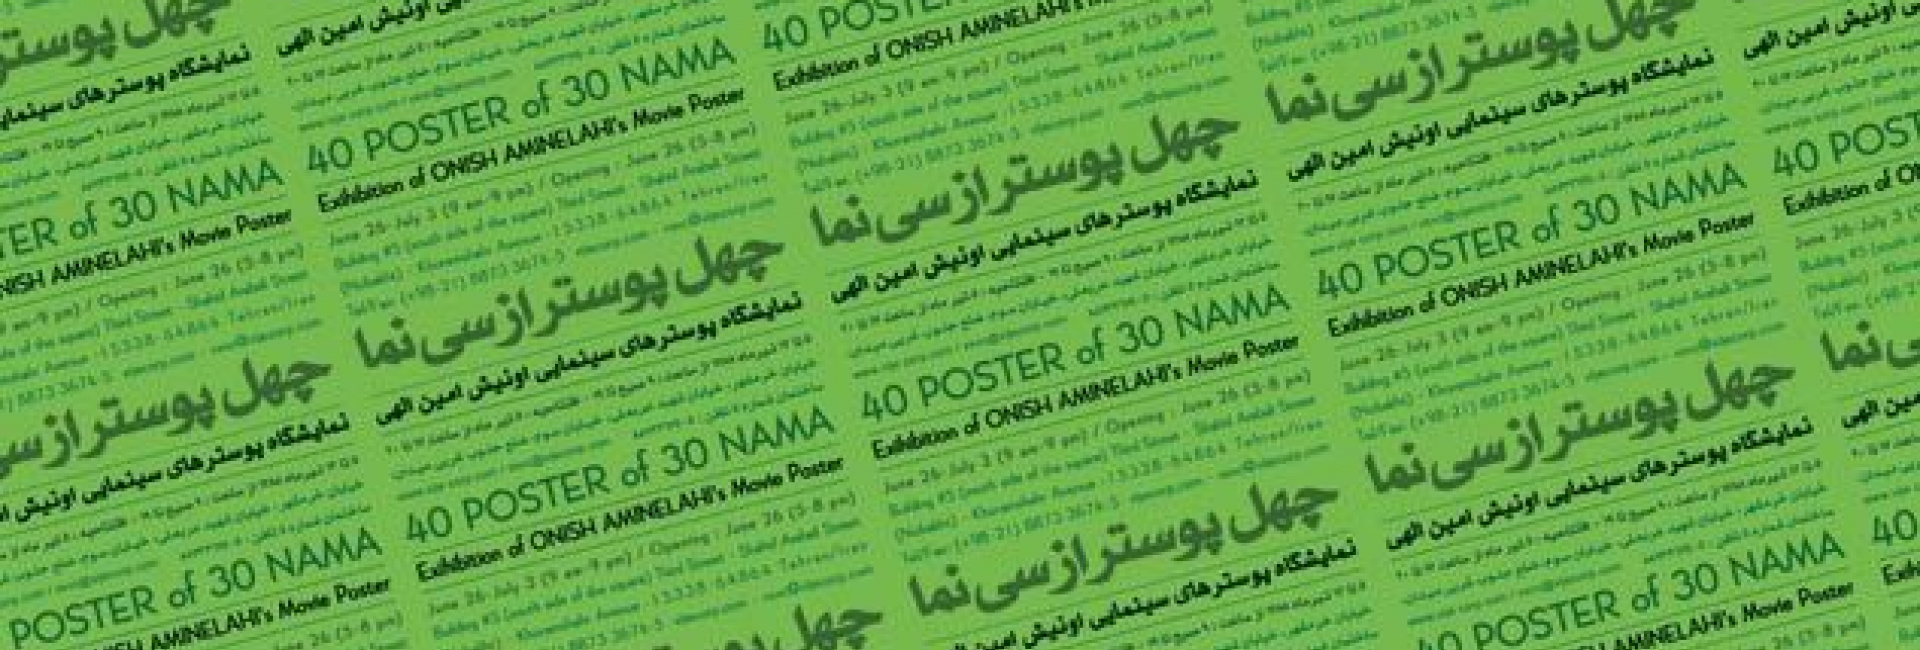 Onish Aminelahi's Solo Cinema poster exhibition in Tehran